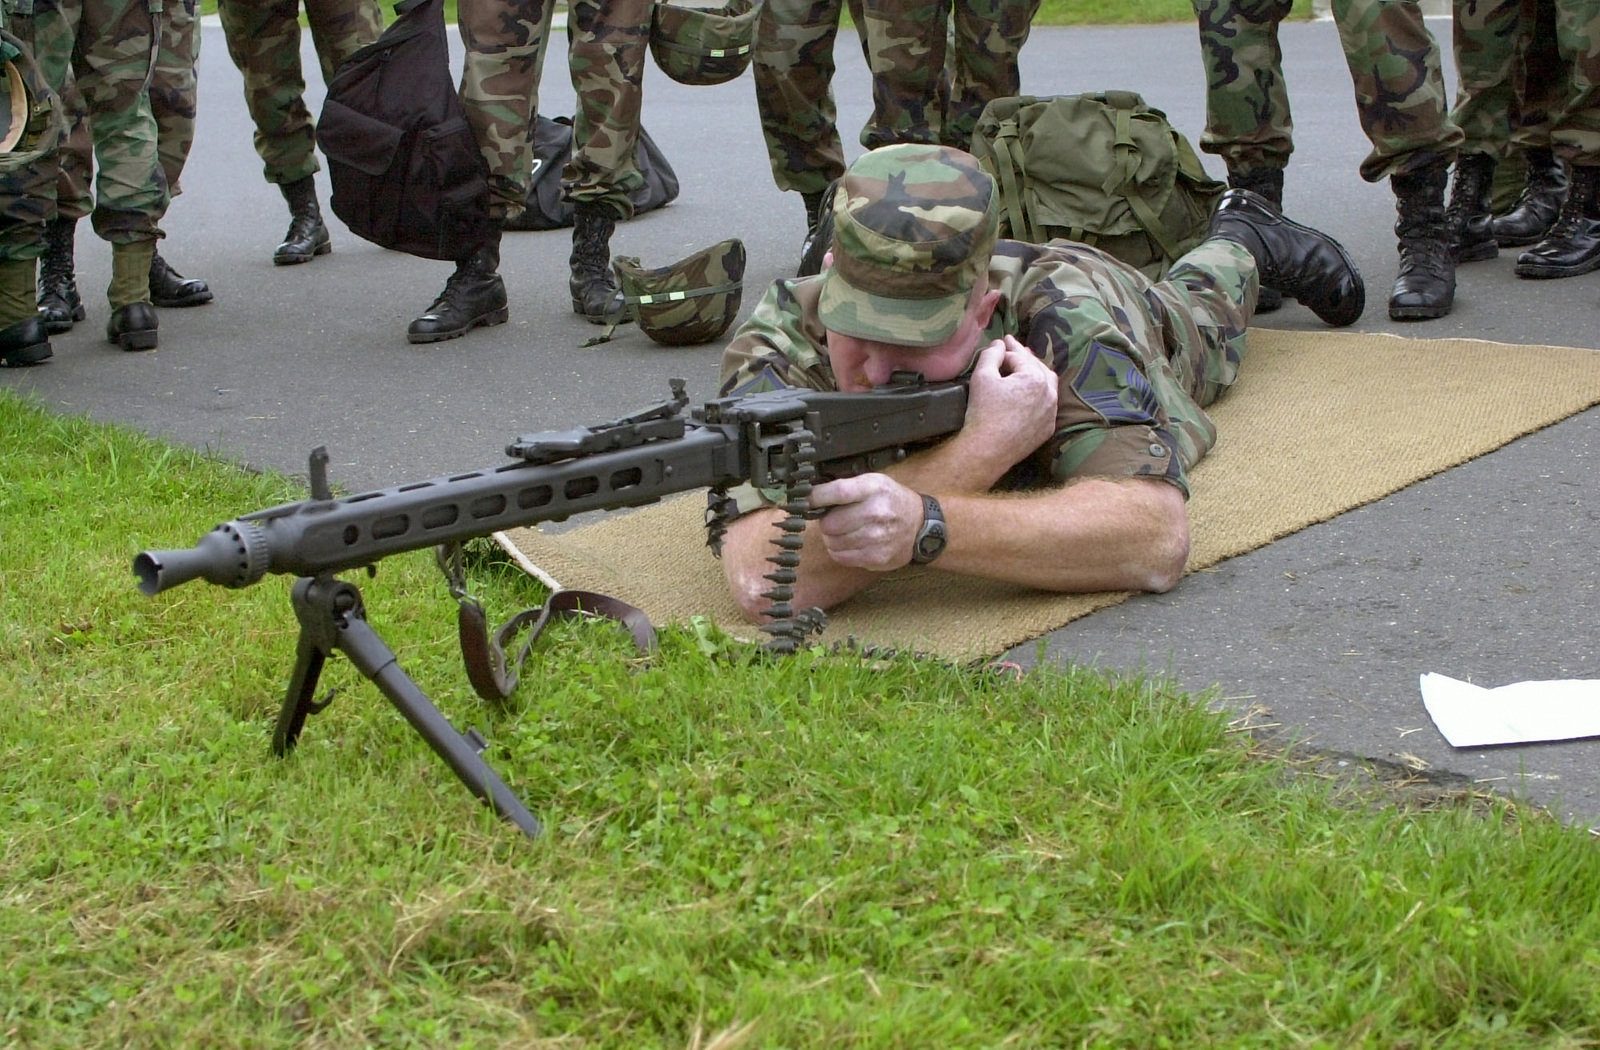 US Air Force (USAF) MASTER Sergeant (MSGT) Russell Harrington, First Sergeant (1SGT) of the 886th Communication Squadron (CS), Sembach Annex, Germany, receives hands on training with a German MG42 7.92mm machine gun, the equivalent of our M-60 7.62mm machine gun